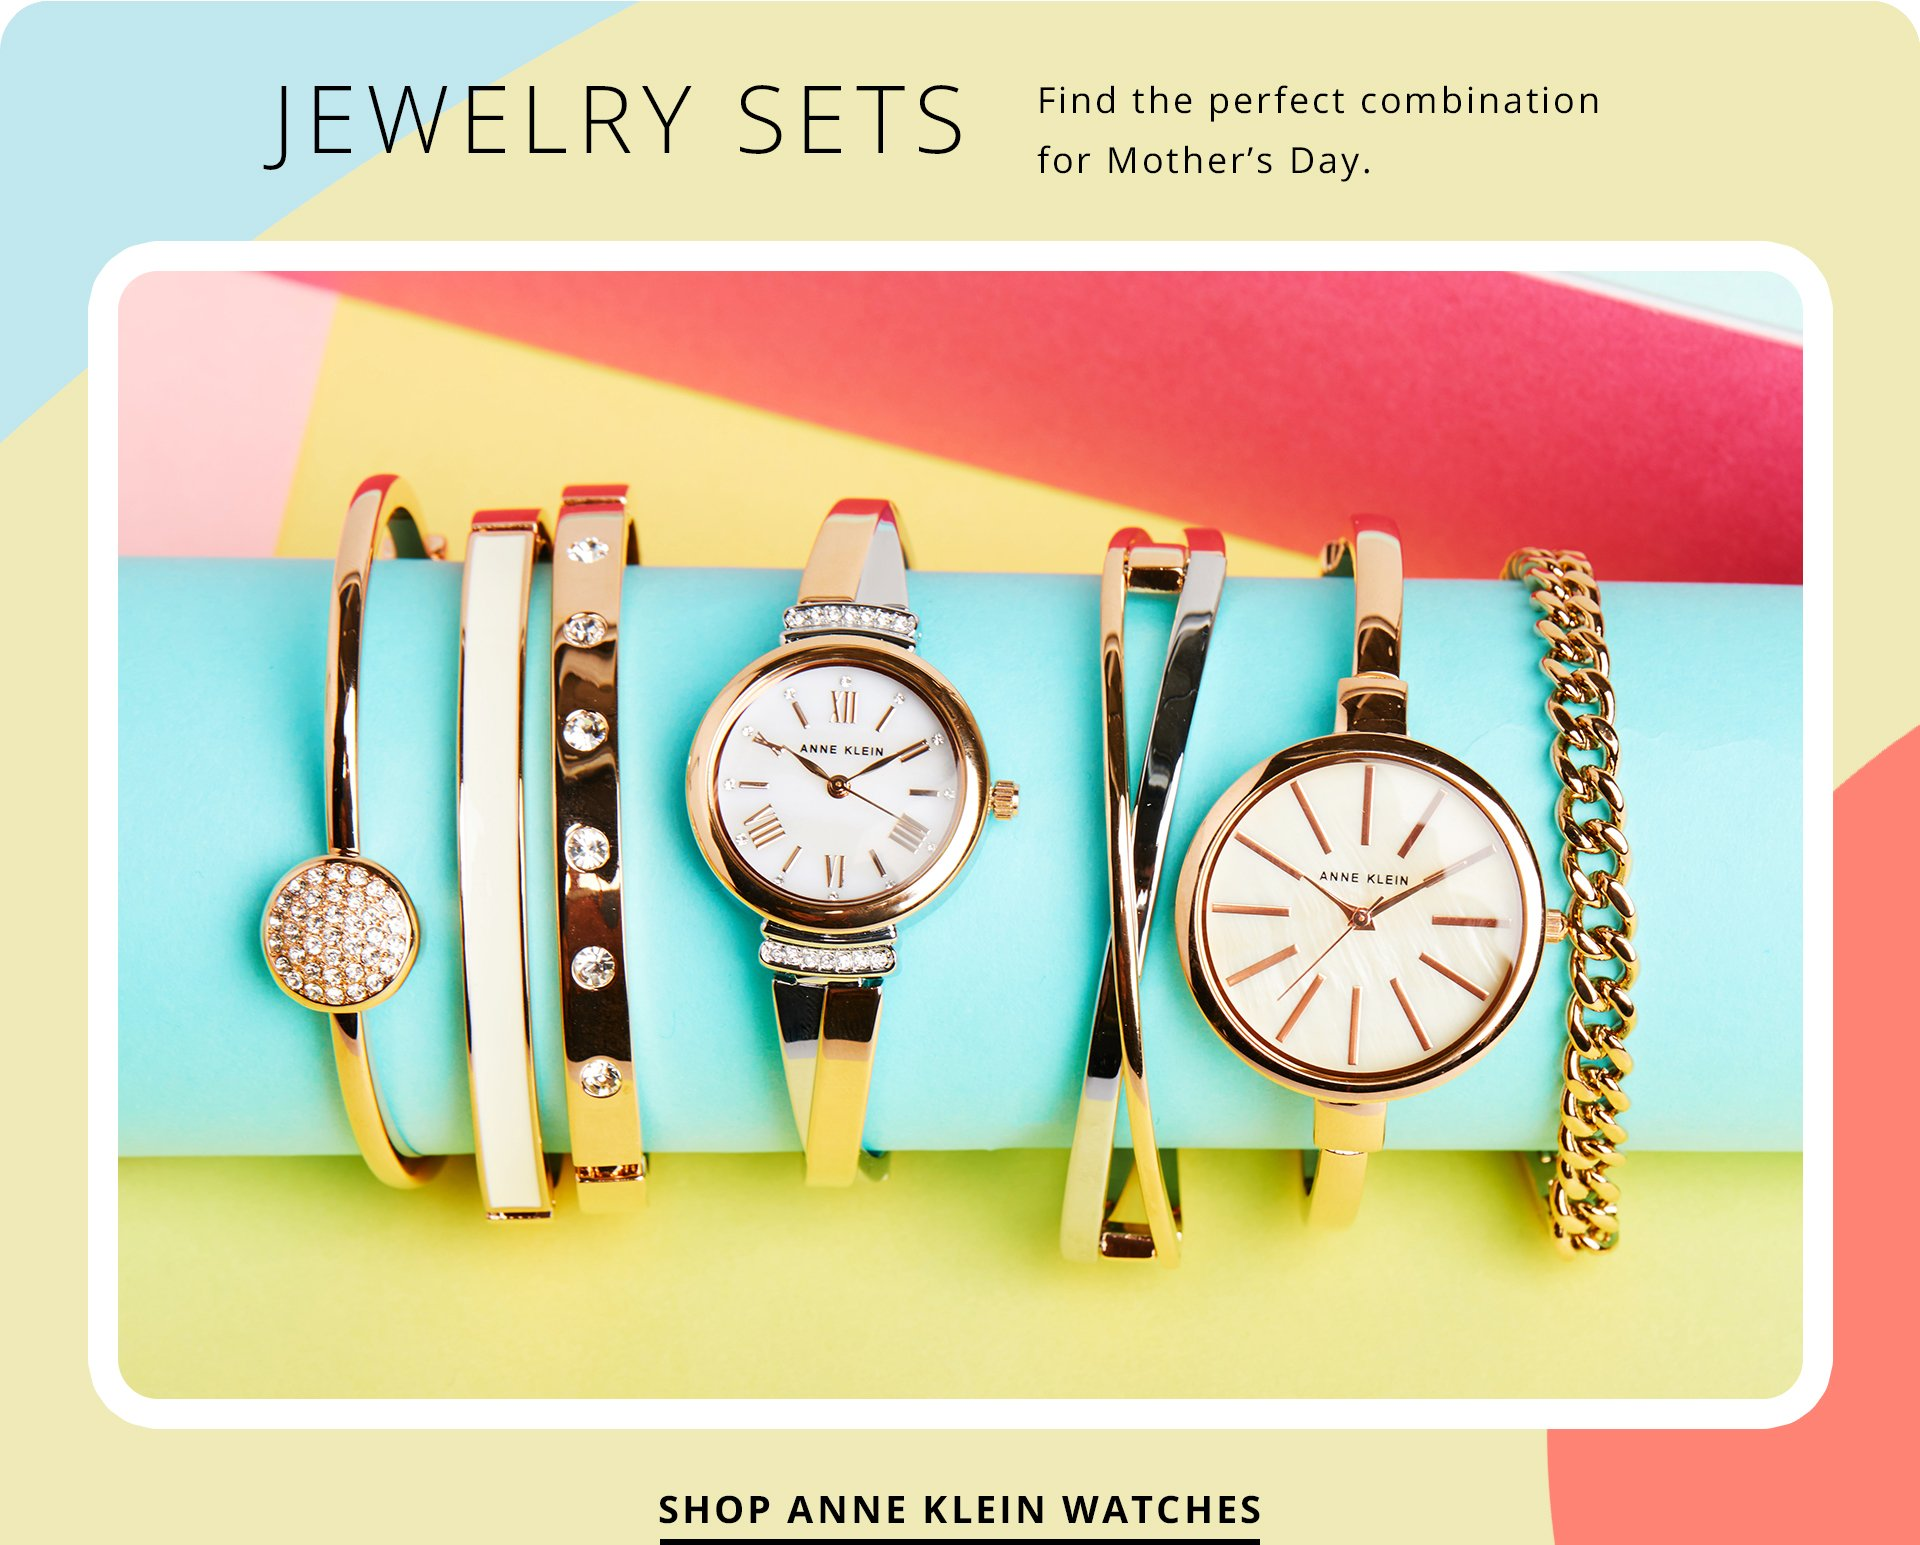 Jewelry Sets. Find the perfect combination for Mother's Day. Shop Anne Klein watches.